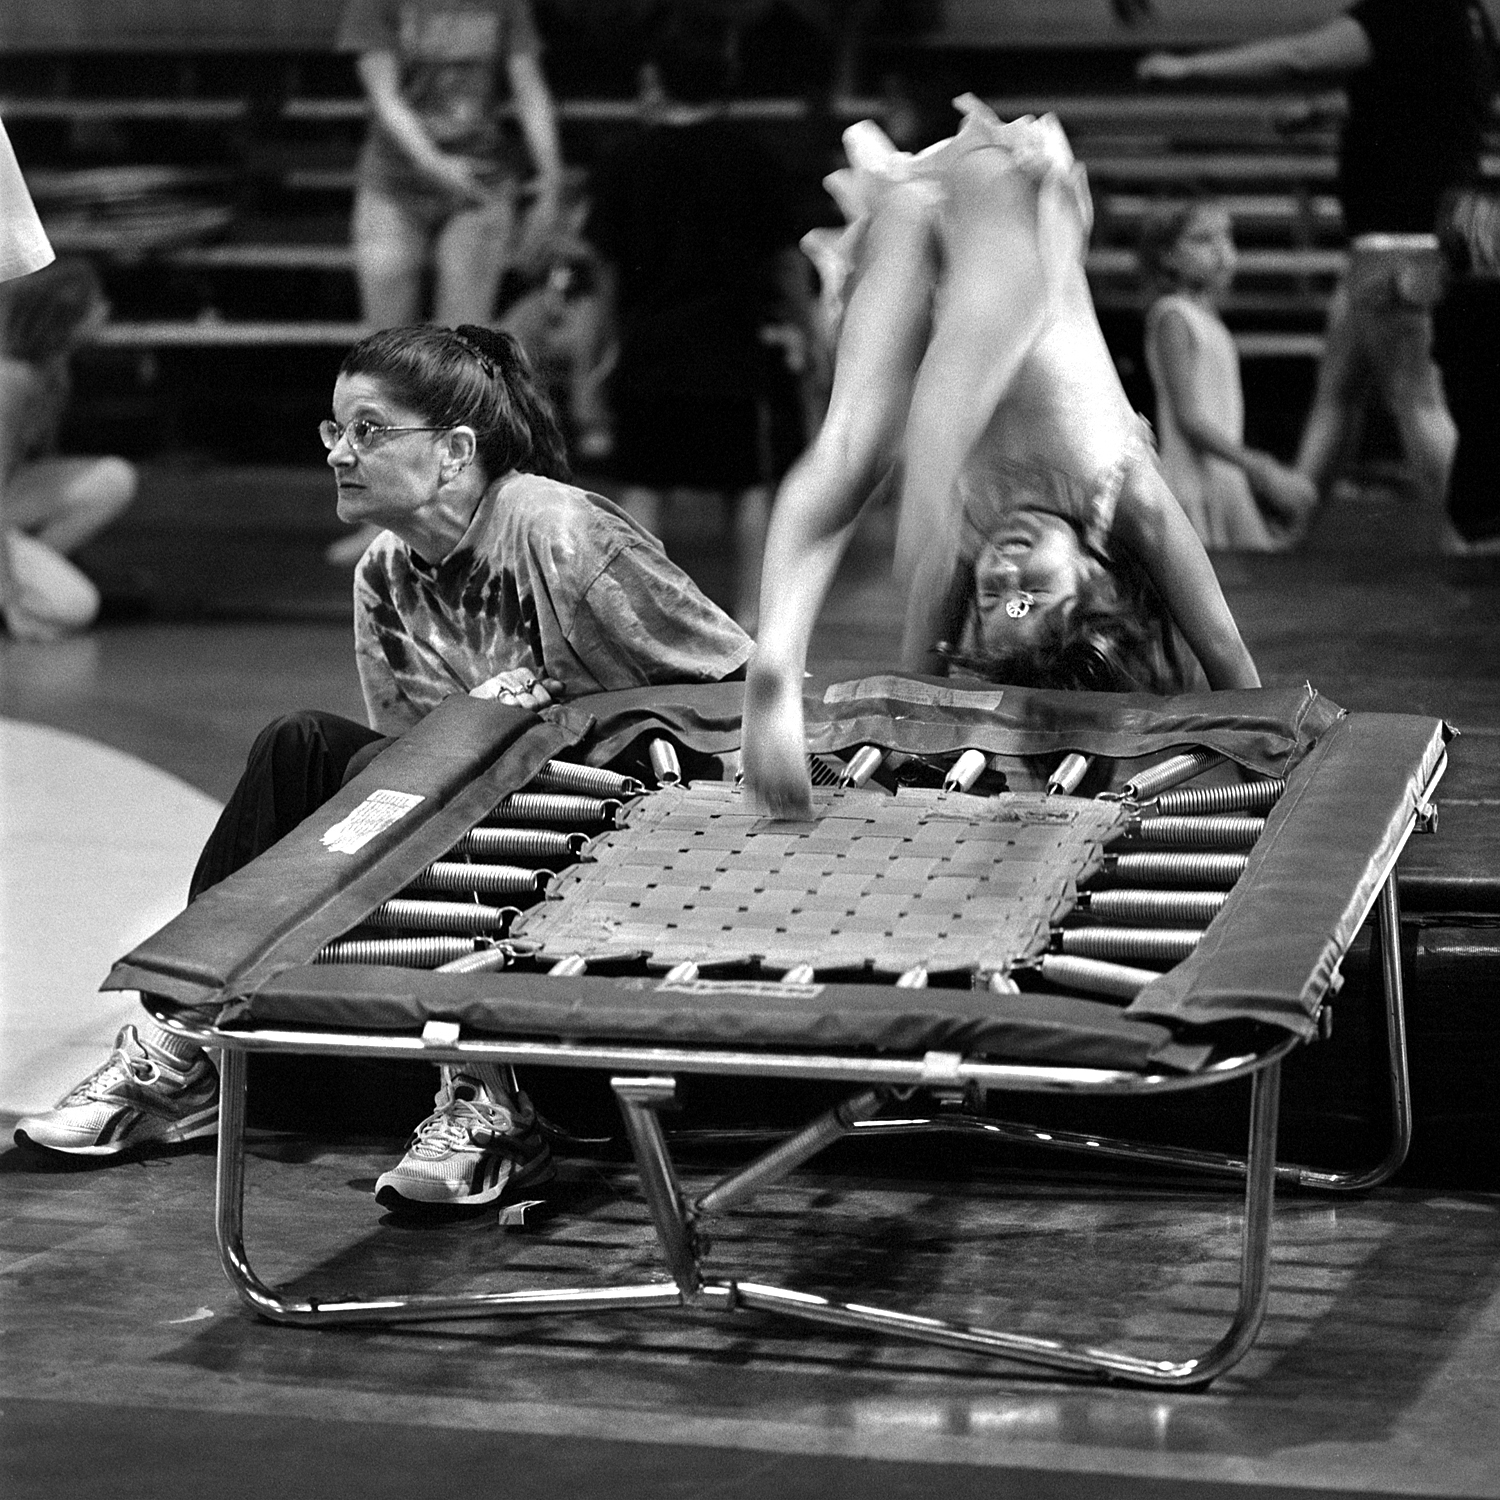 Lori Smith trains the tumbling acts. There are beginning, intermediate and advance acts, with sometimes up to 40 or 50 kids in the beginners group. They learn pretty quickly to not let their necklaces dangle while doing somersaults.